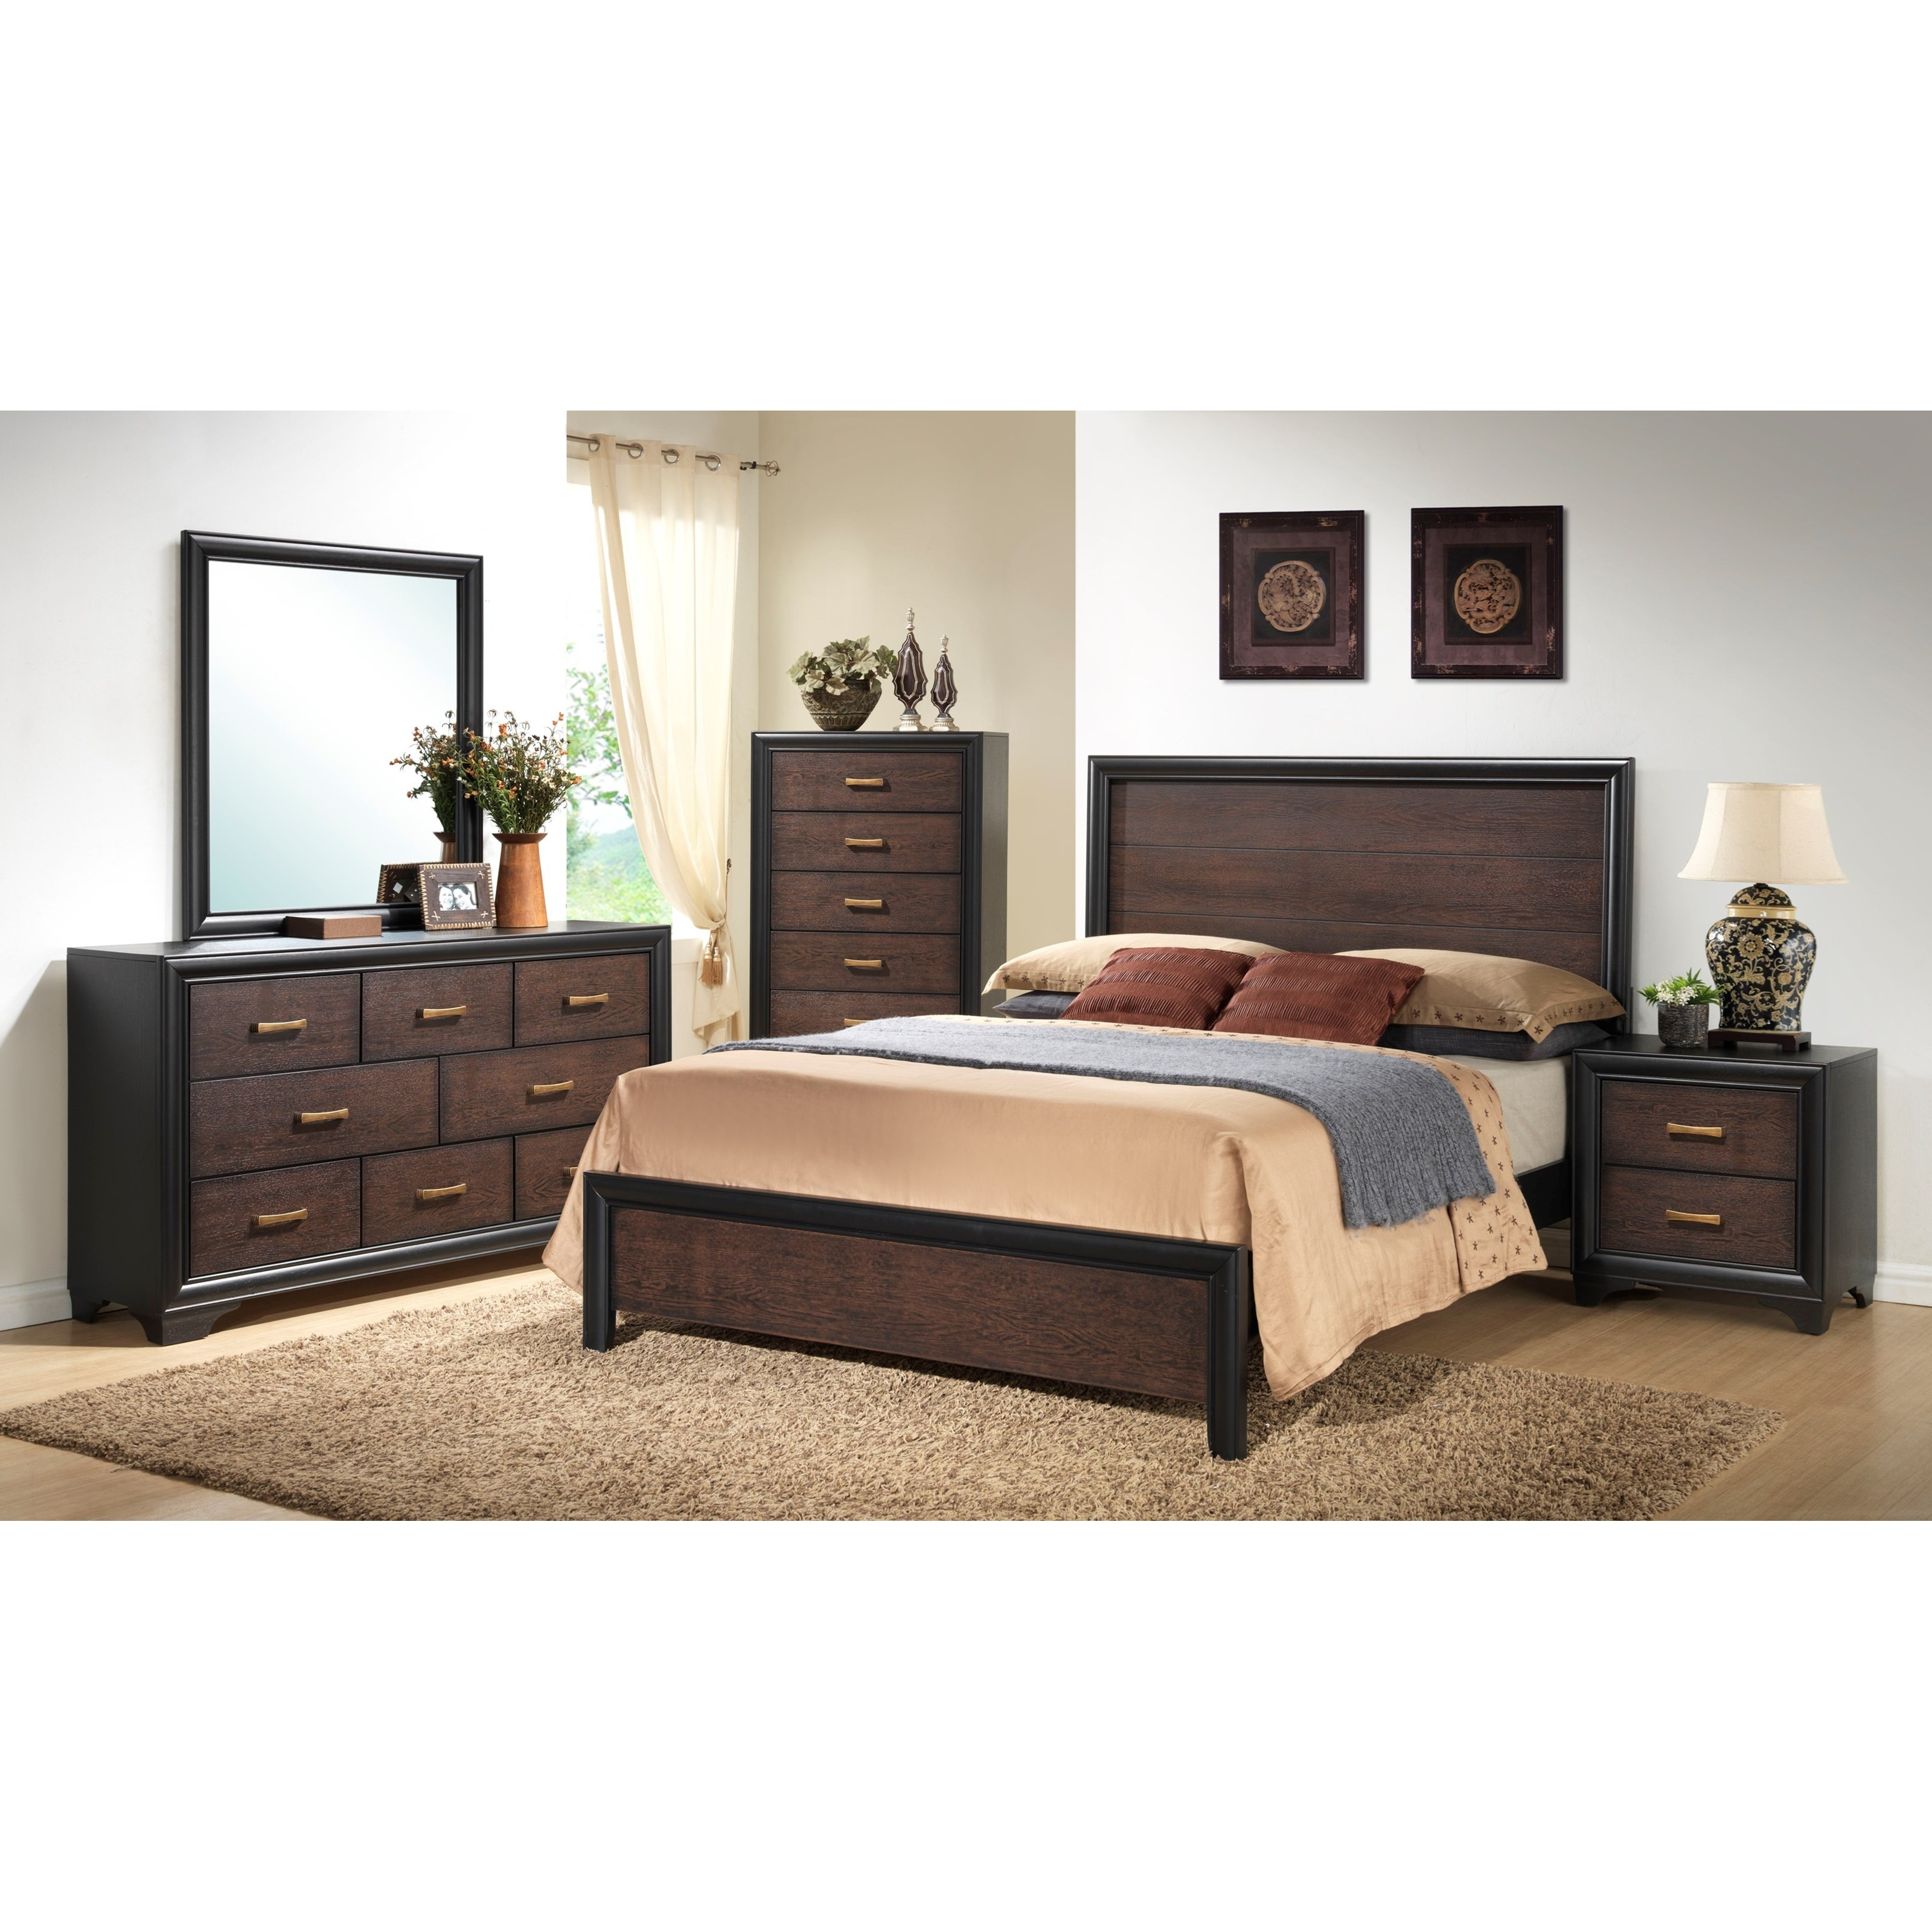 Prelude Queen Bedroom Group by Emerald at Northeast Factory Direct